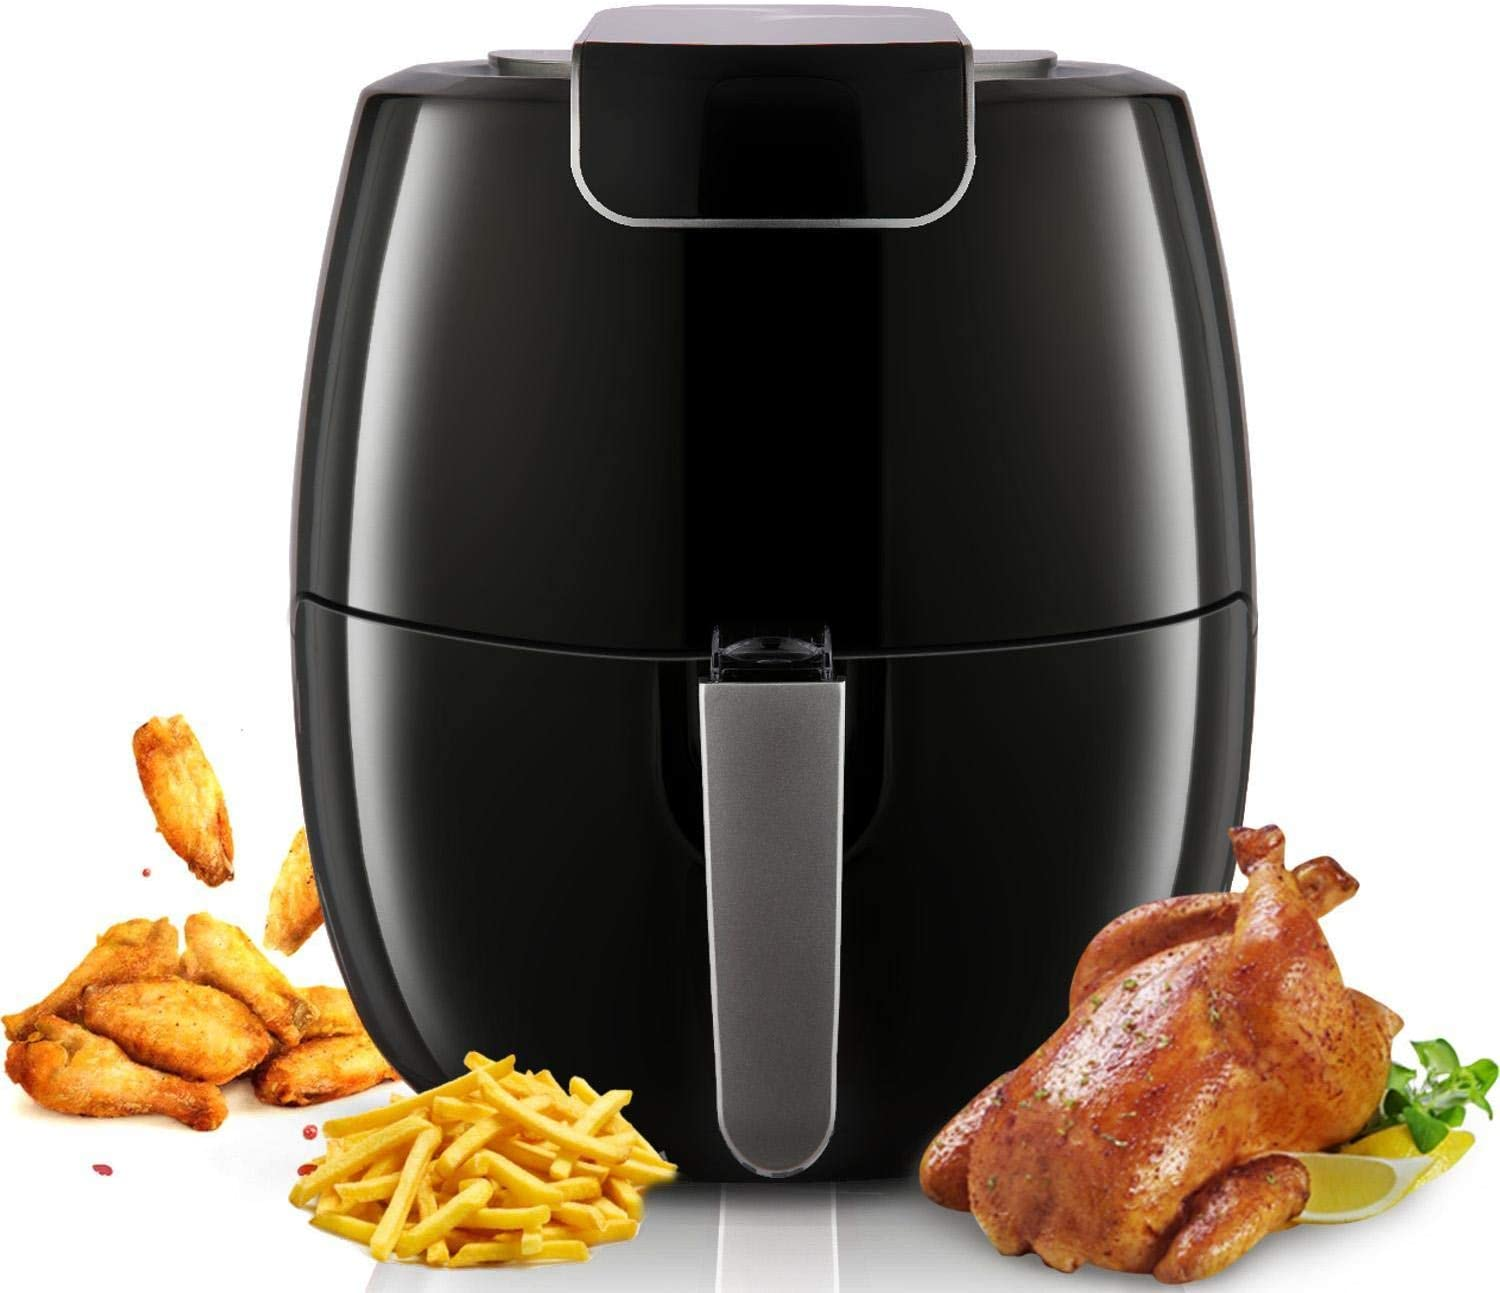 TOOLUCK Air Fryer, 1800W 6.5L Power Digital Air Fryer Oven Cooker With Touchscreen,Non-stick Detachable Pan,Adjustable Temperature(up to 392℉) And 30 Minutes Timer For Healthy Oil And Low Fat Cooking